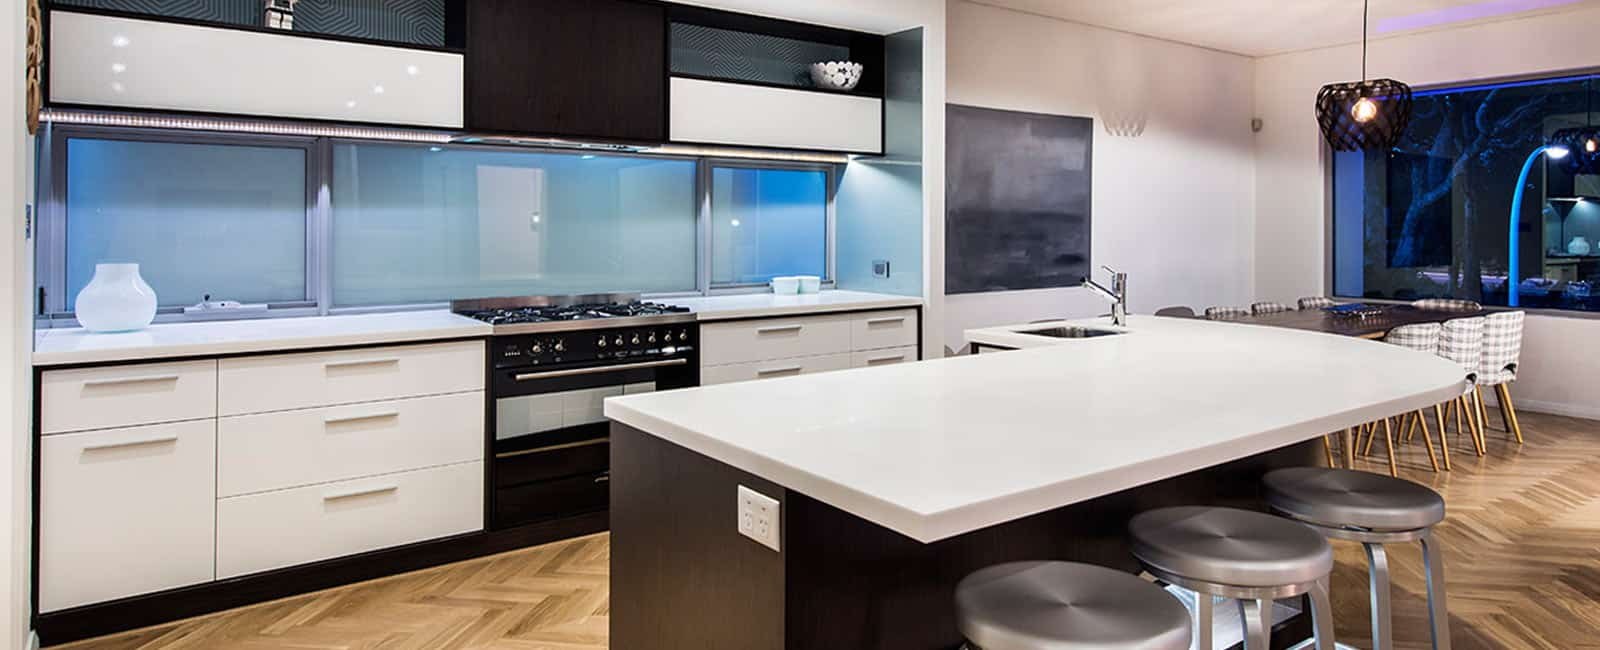 kitchenprofessionals com kitchen design Kitchens Perth Kitchen Design Renovations Kitchen Professionals Perth WAKitchens Kitchen Design Renovations Kitchen Professionals